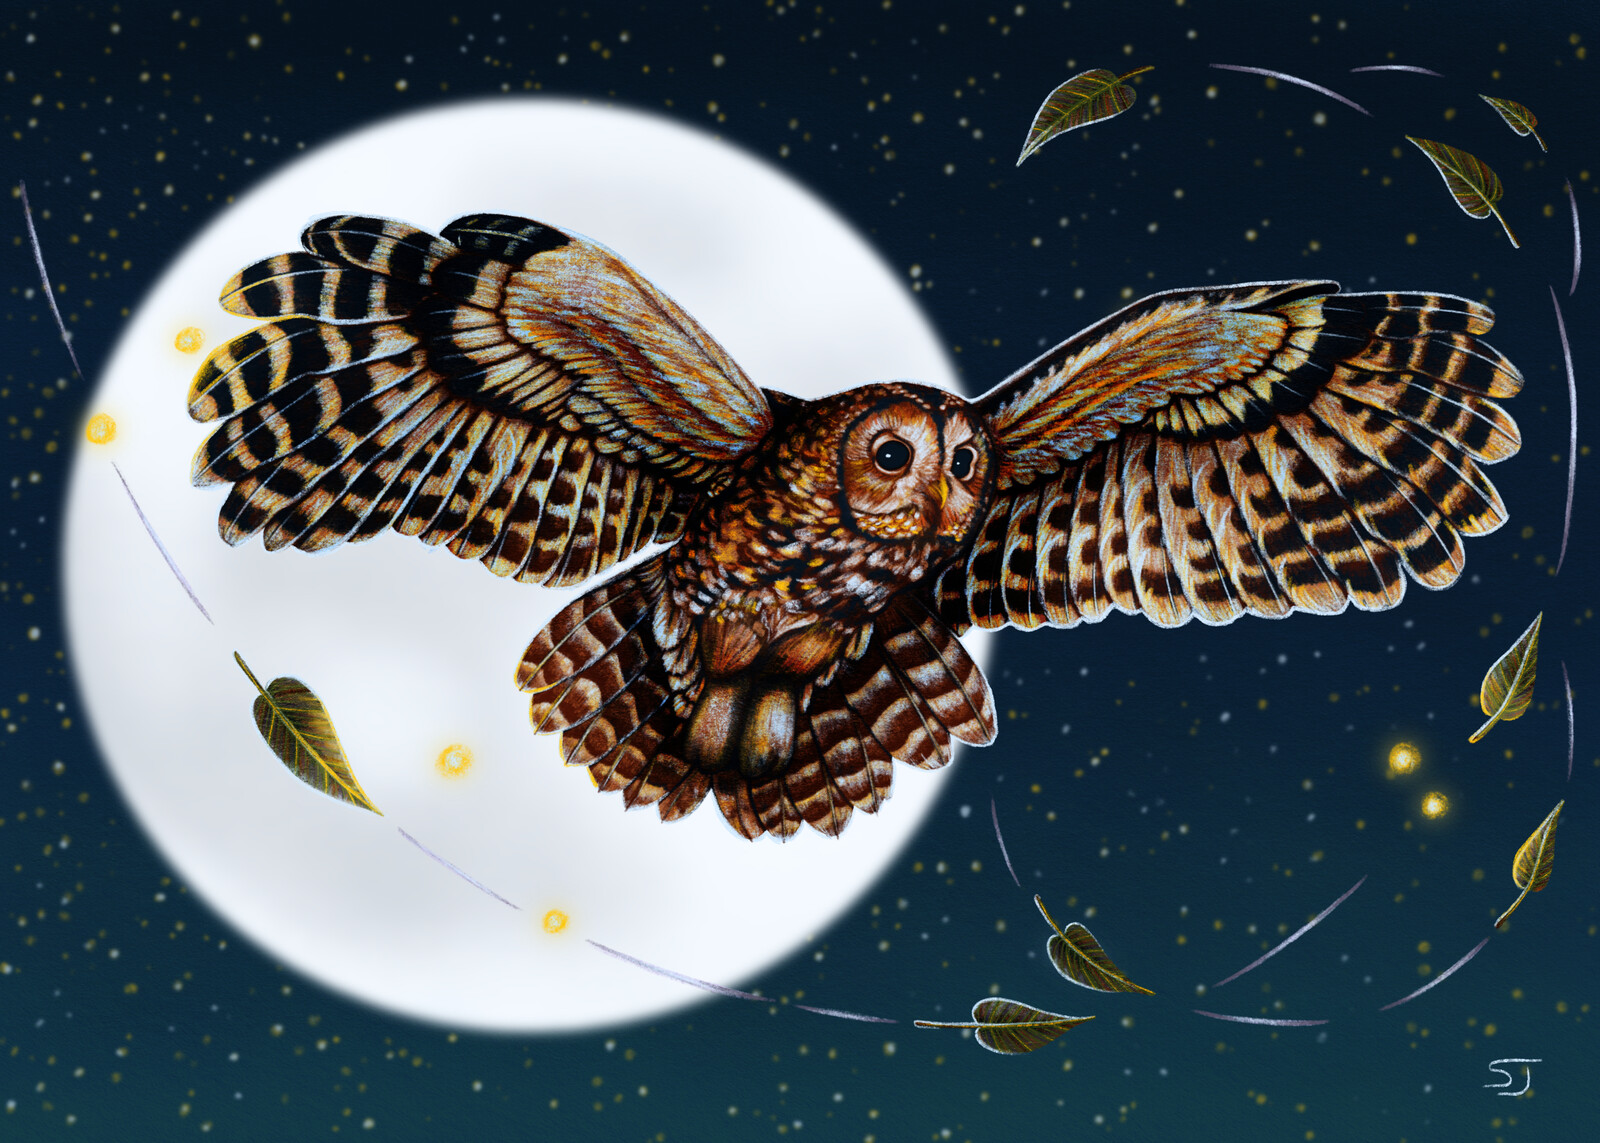 Tawny Owl in the Night Sky